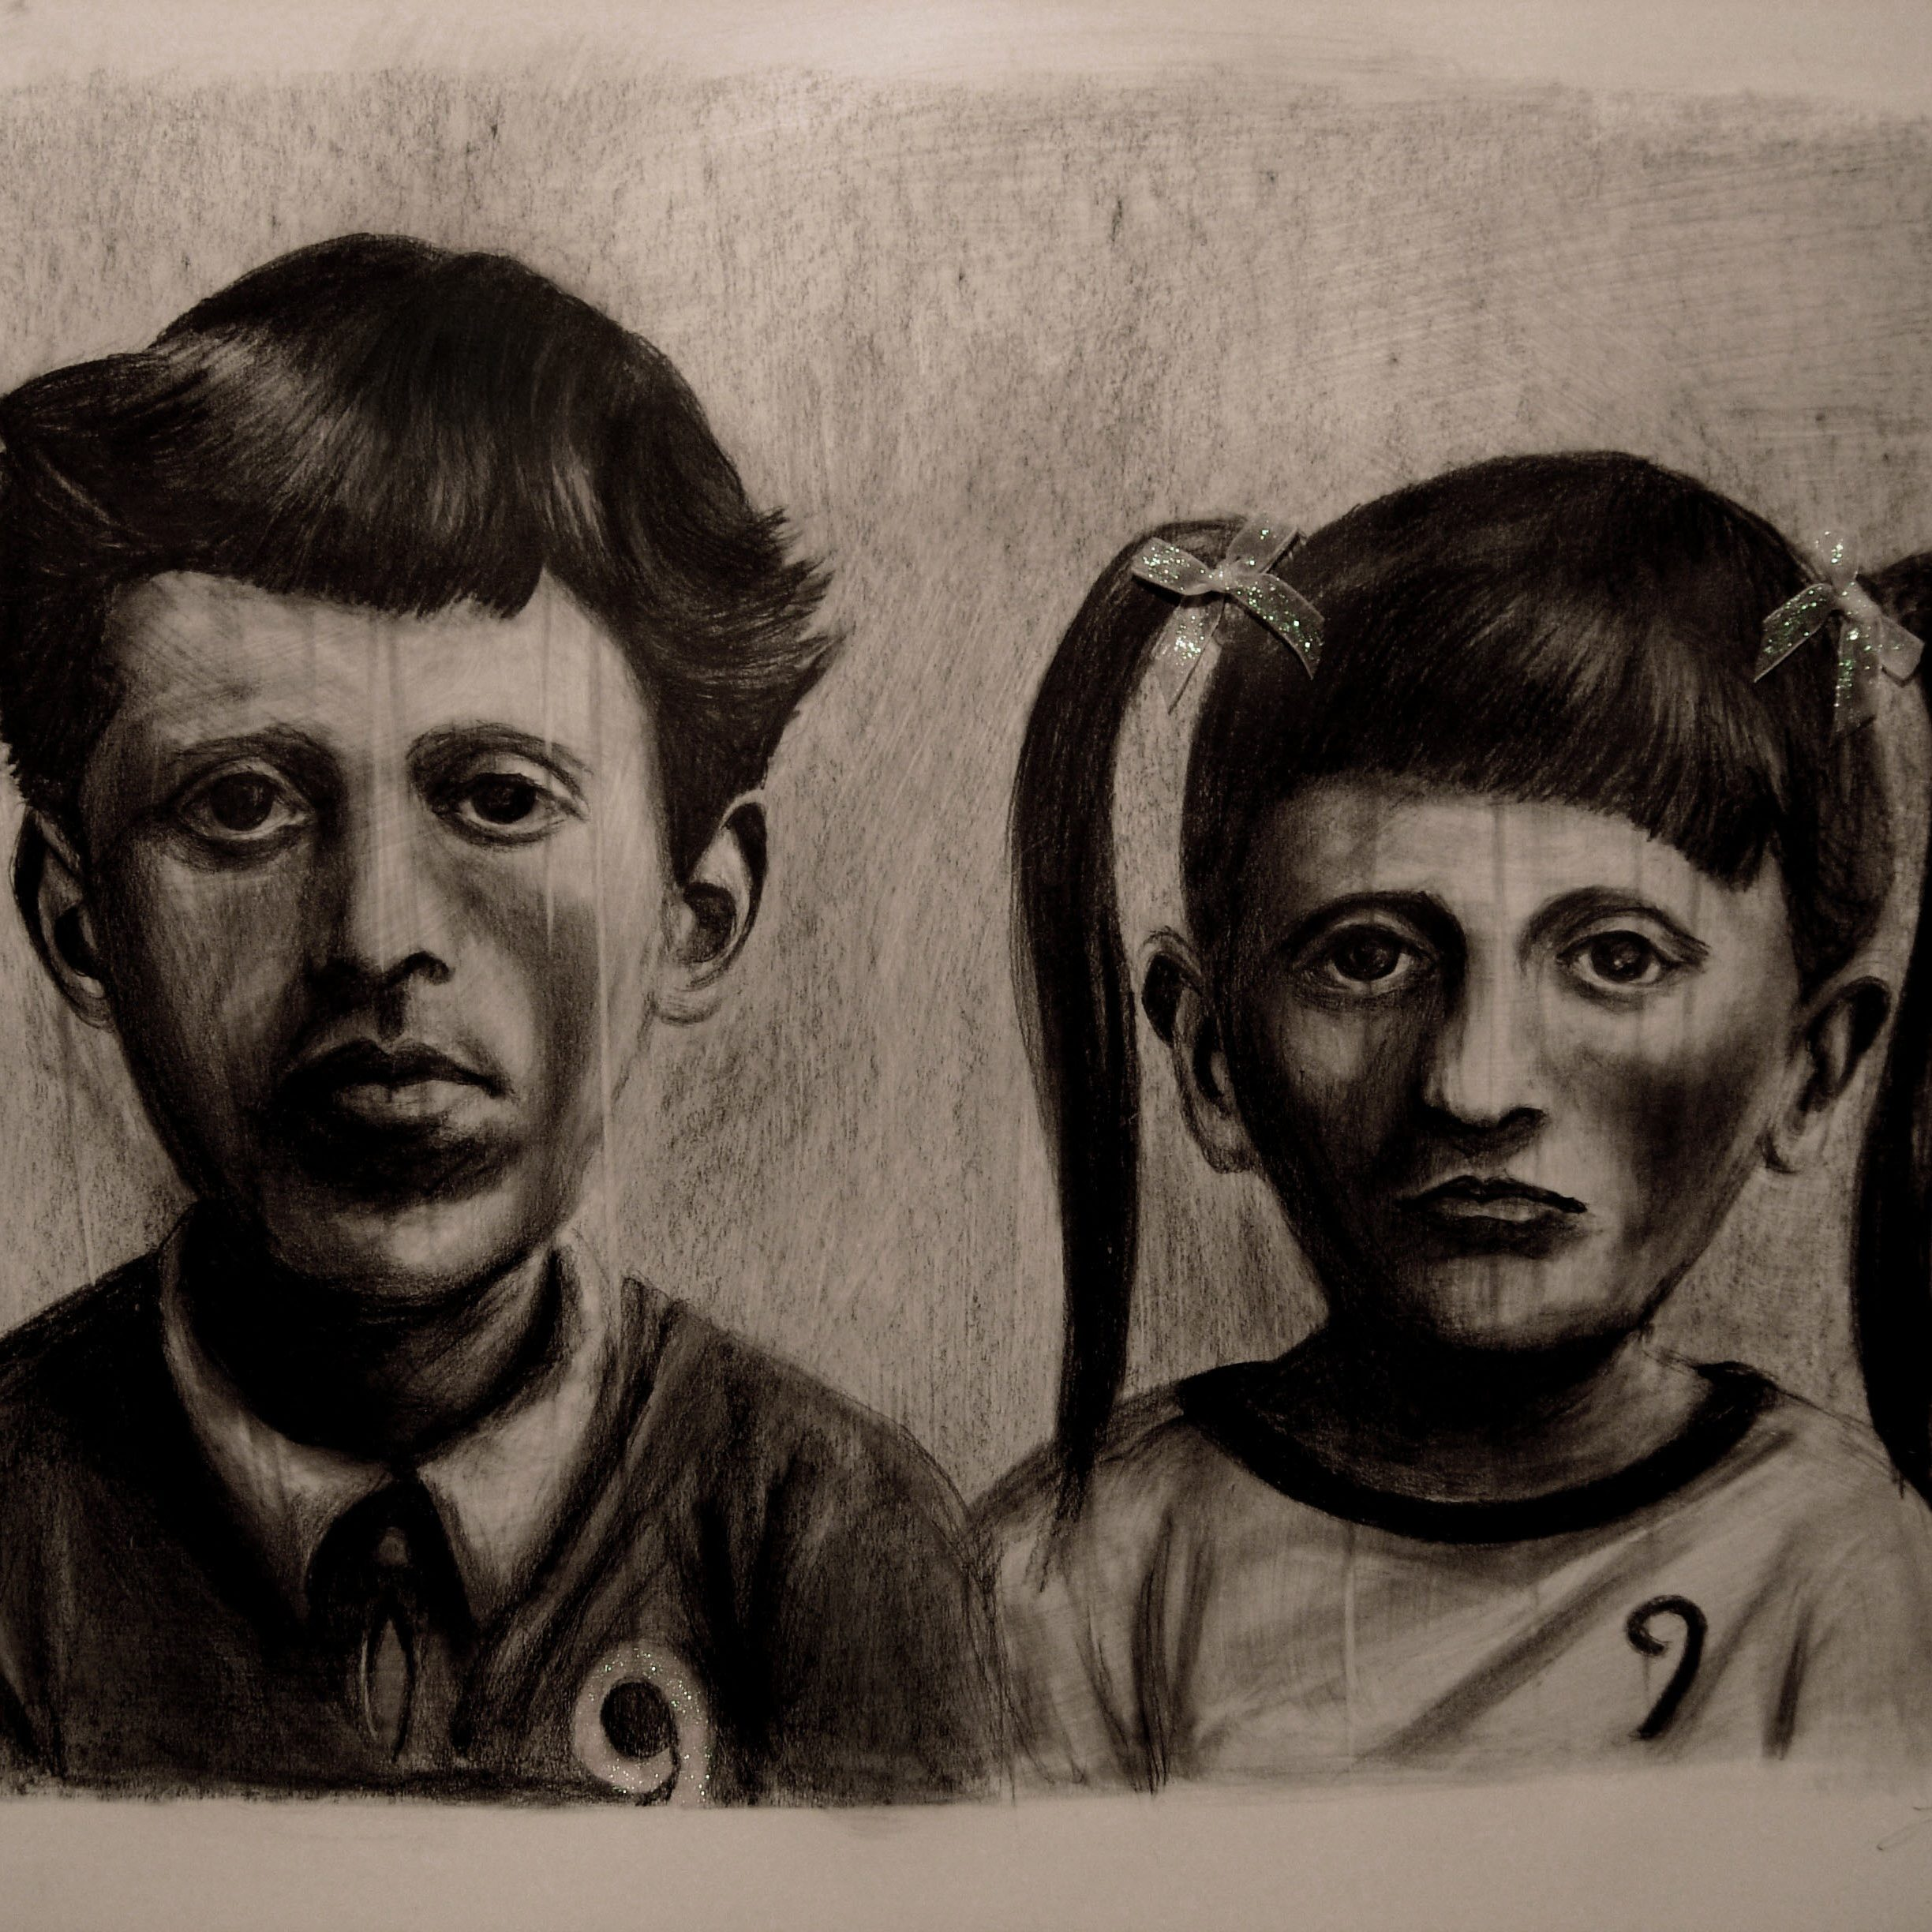 Giuditta R. Explores Different Sides of Human Identity in Graphite-On-Cardboard Drawings